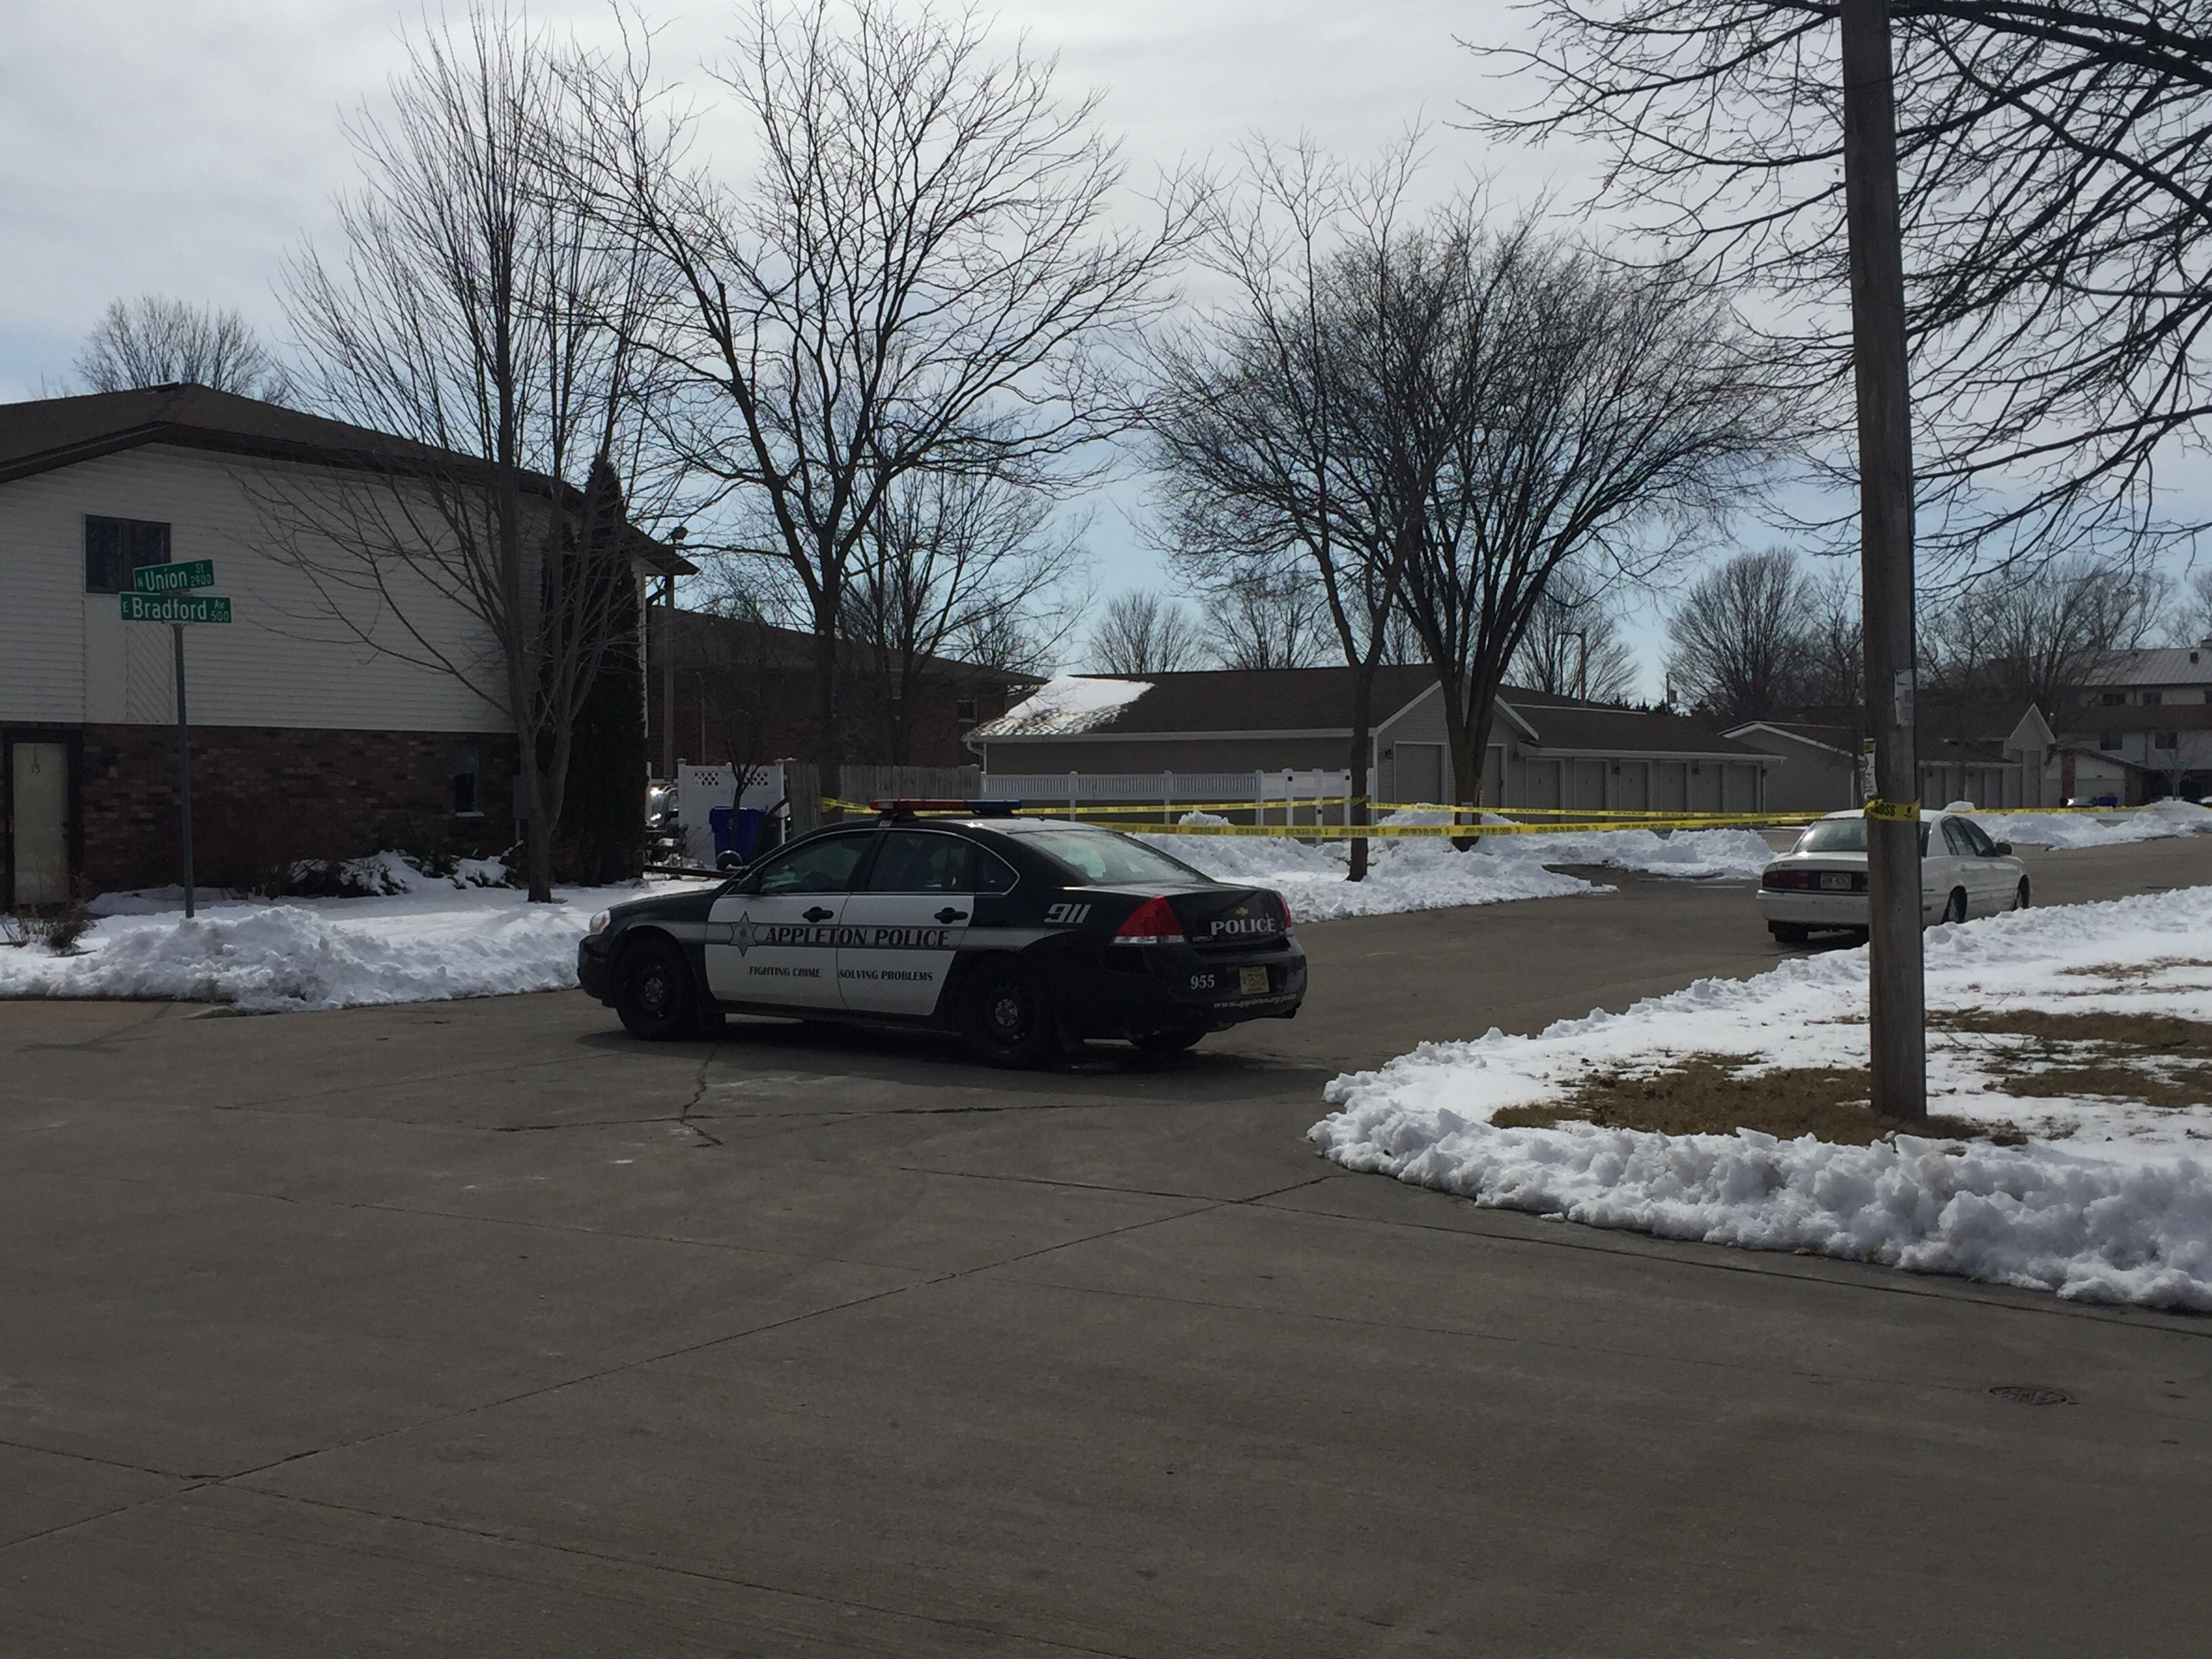 Appleton police on scene investigating a suspicious incident at{&amp;nbsp;}E Bradford Ave and N Union Street, April 5, 2018. (WLUK/Mike Moon)<p></p>